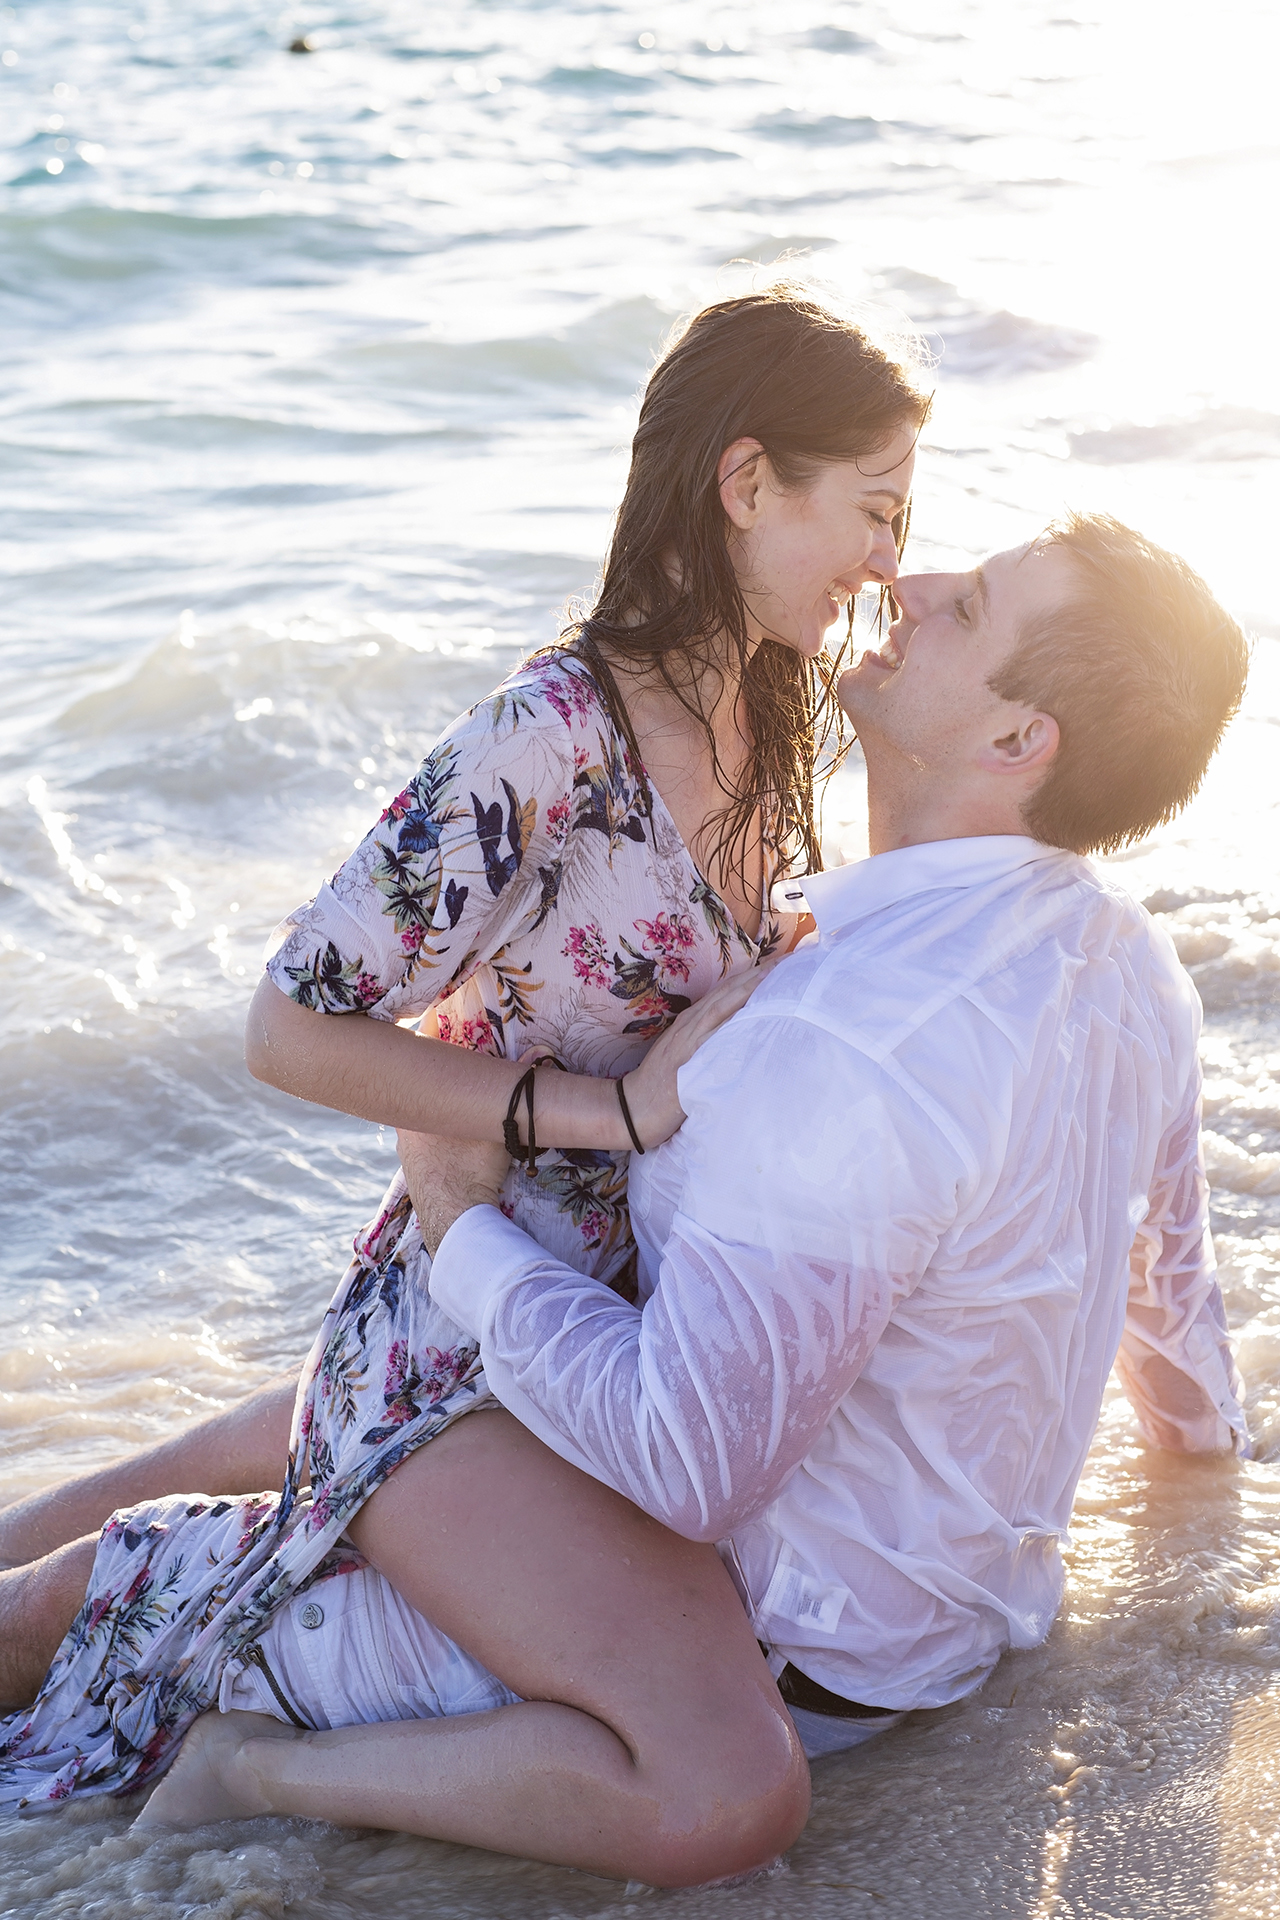 punta cana wedding photographer photoshoot on a beach with bride and groom 26